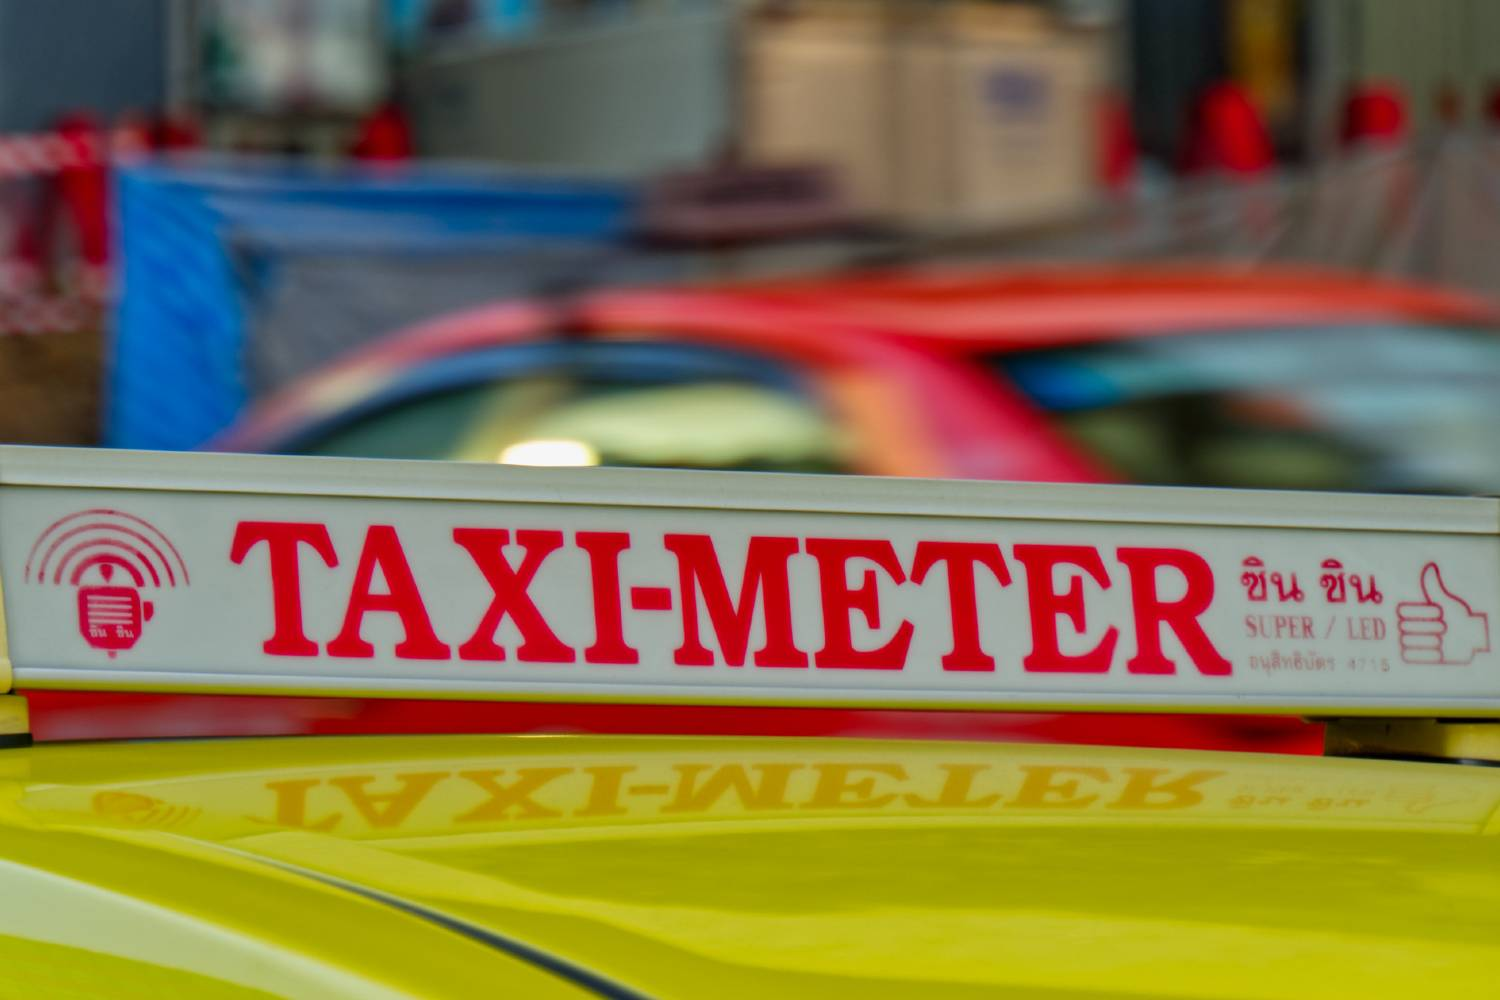 Taxi meter sign on a taxi in Bangkok